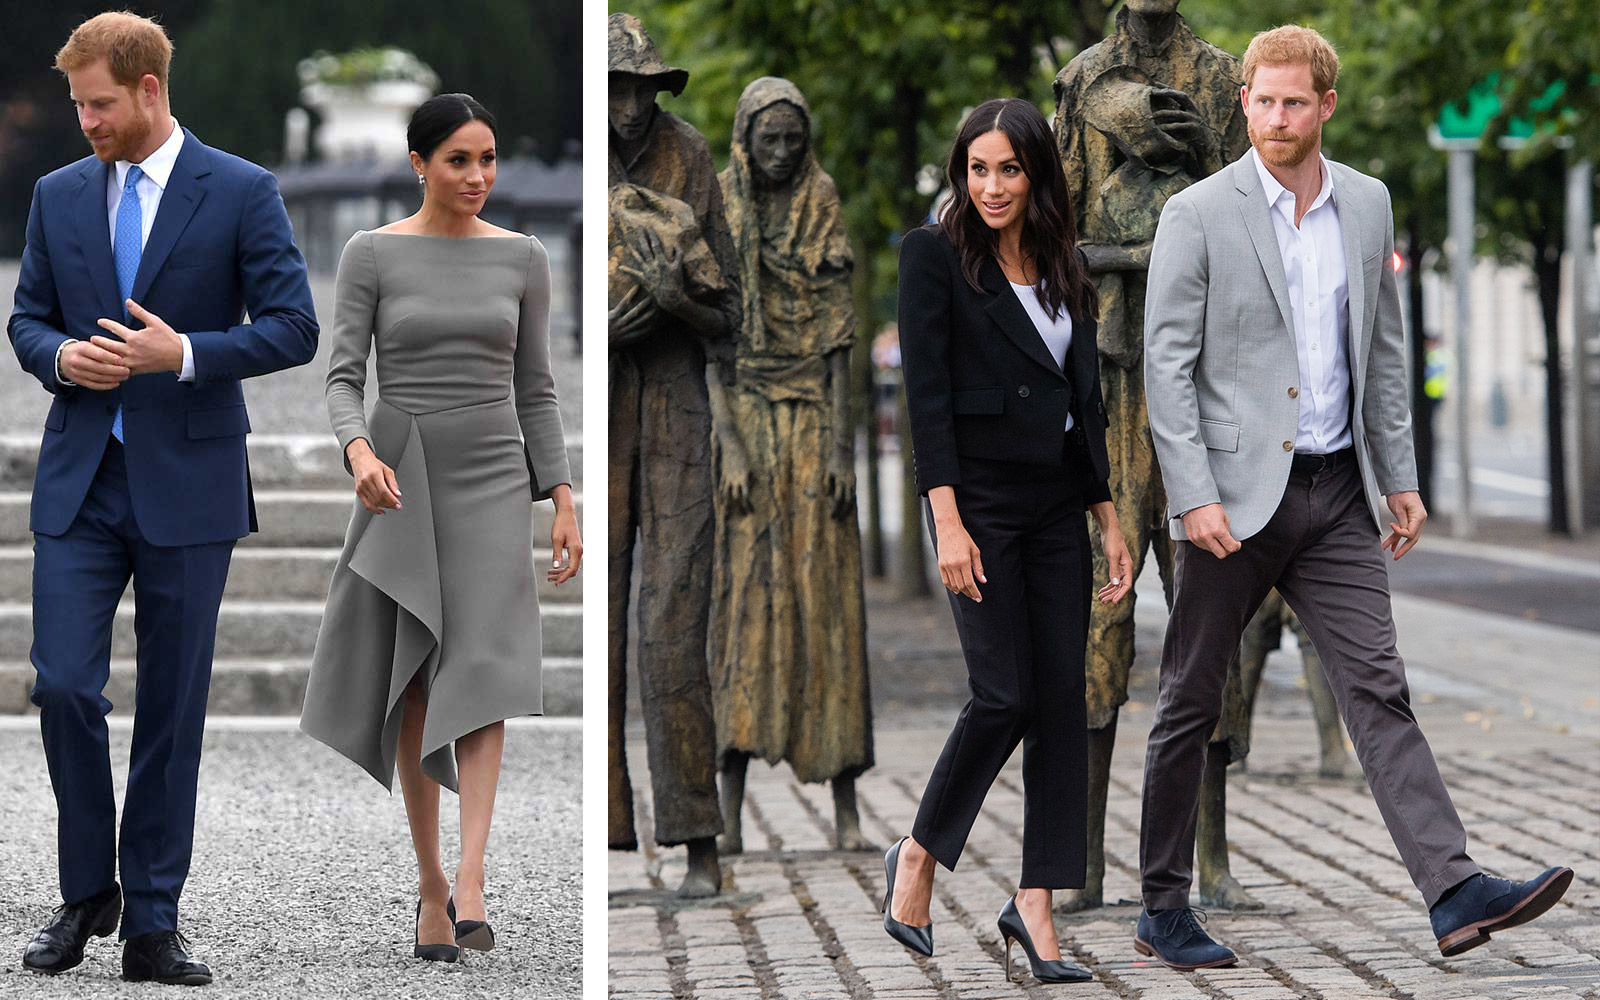 Meghan Markle Just Wore an Estimated $22,000 Worth of Clothing in 90 Minutes